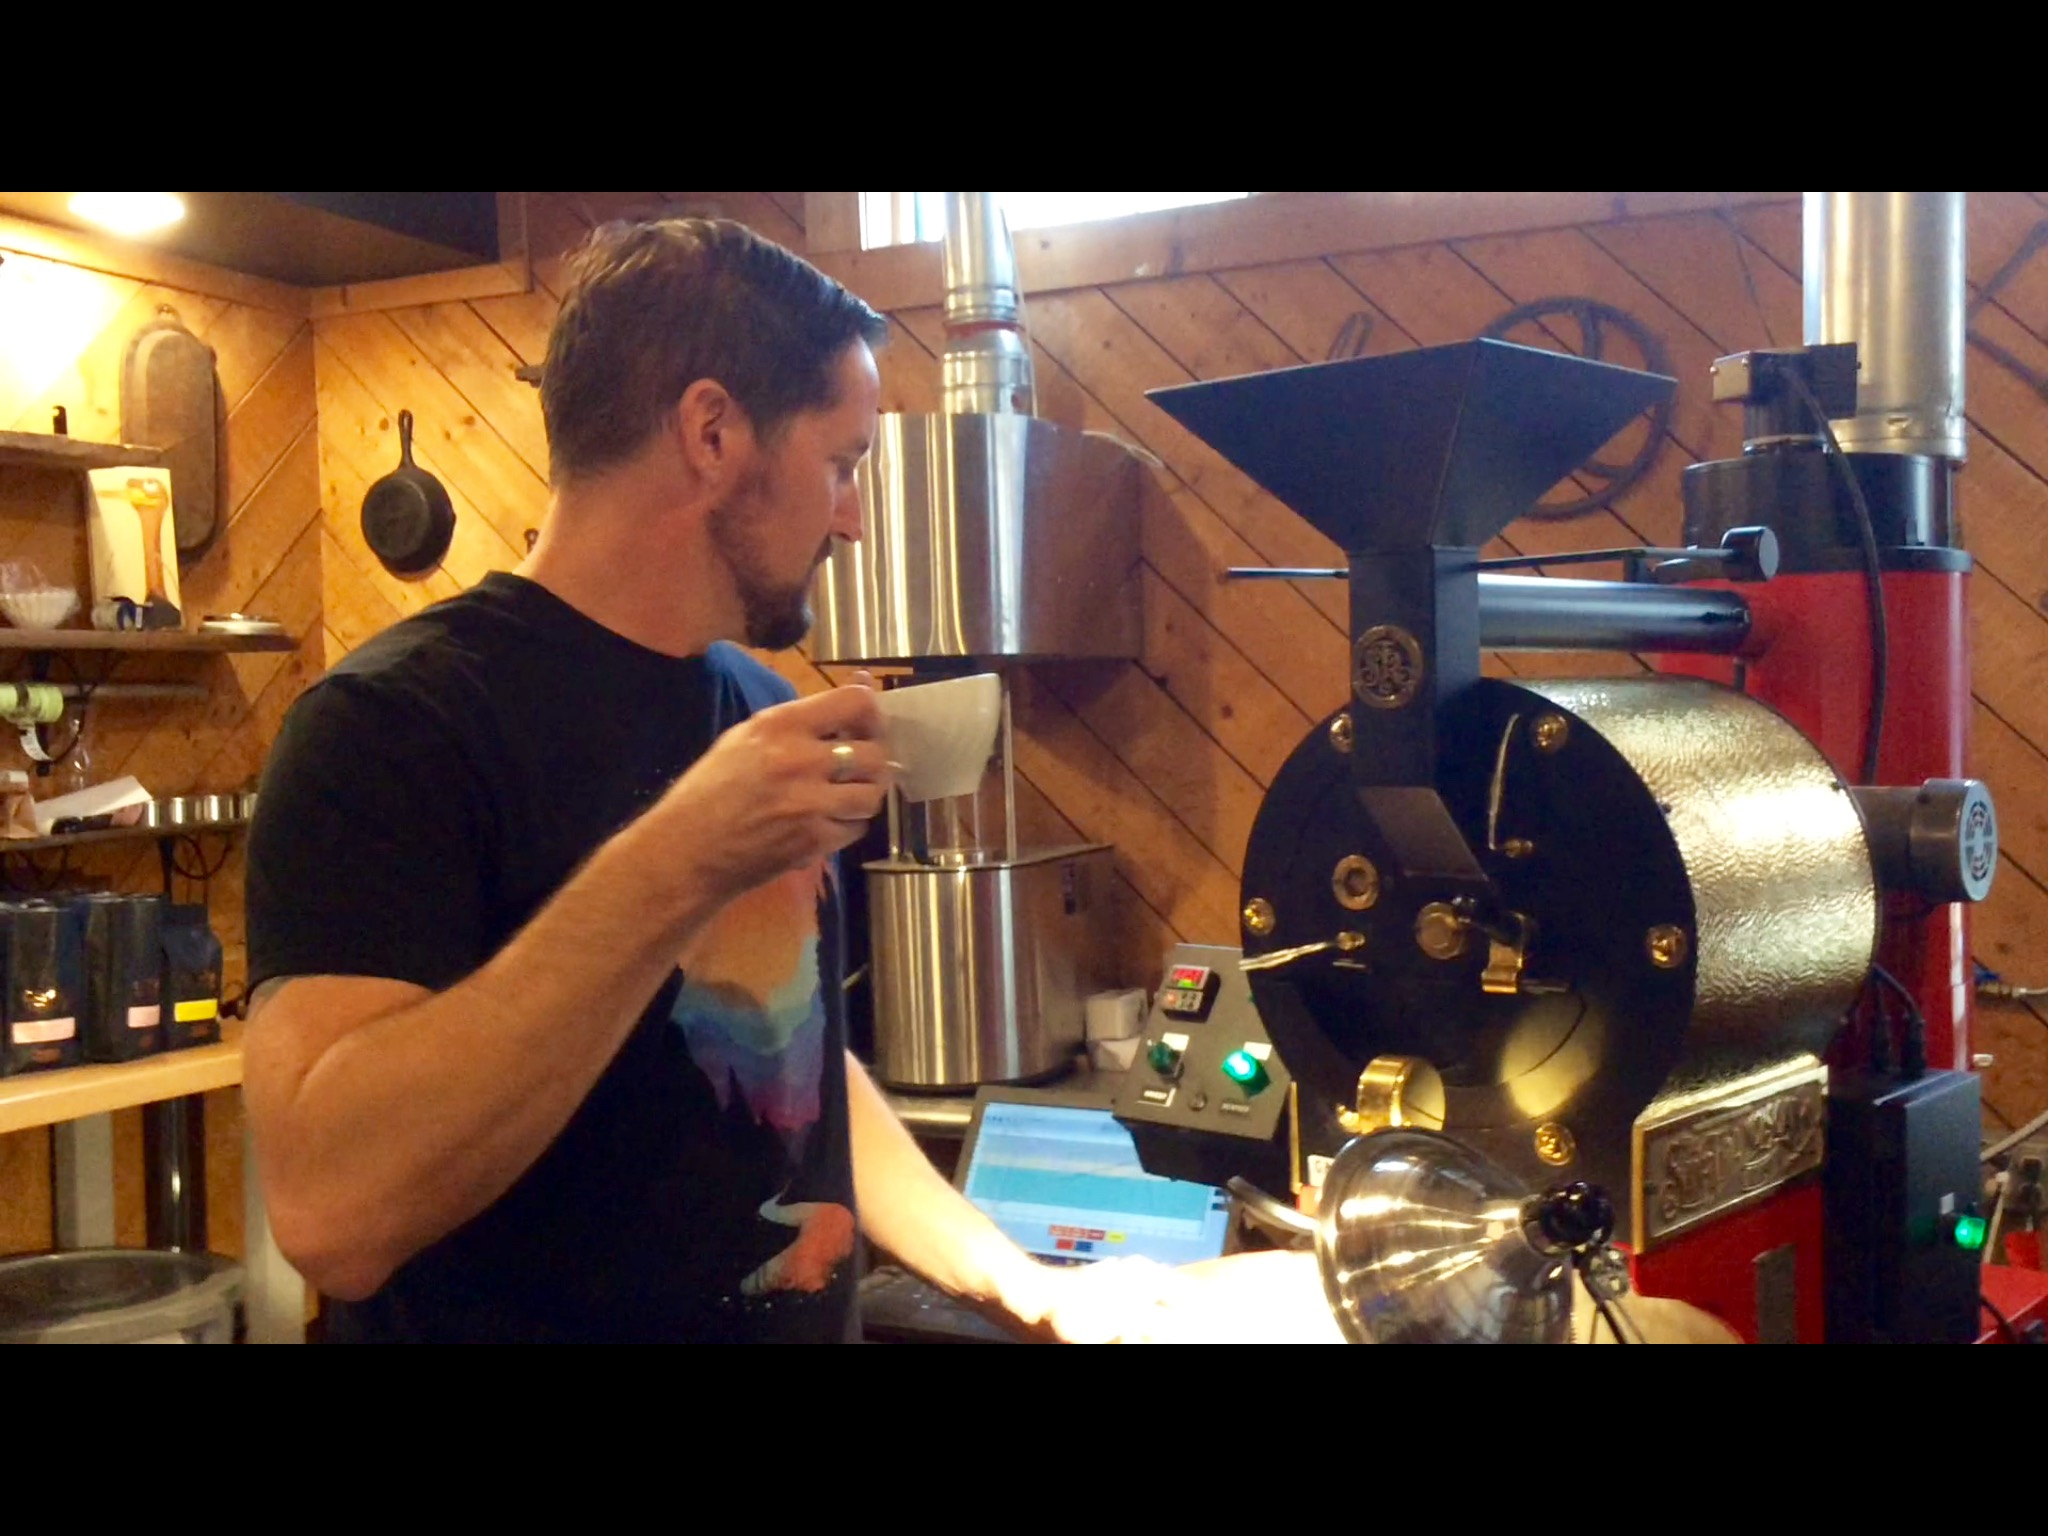 Jason Campbell enjoying a cup of freshly brewed coffee while roasting Java beans.